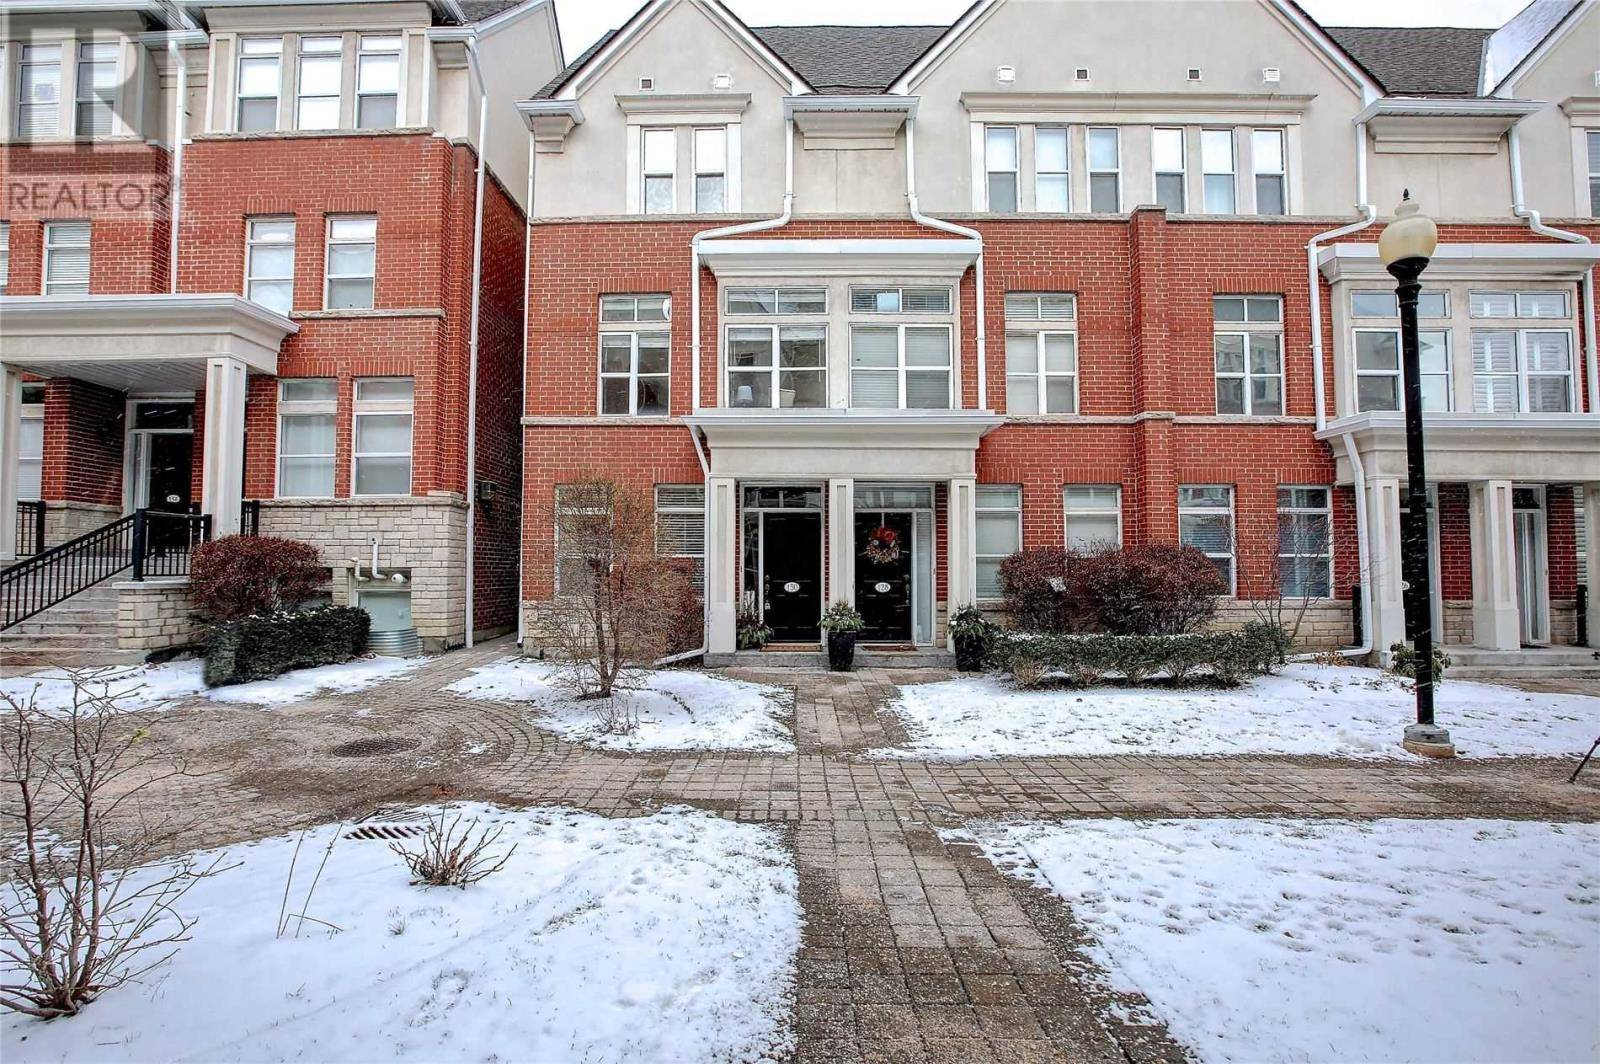 Townhouse for sale at 130 Resurrection Rd Toronto Ontario - MLS: W4666422